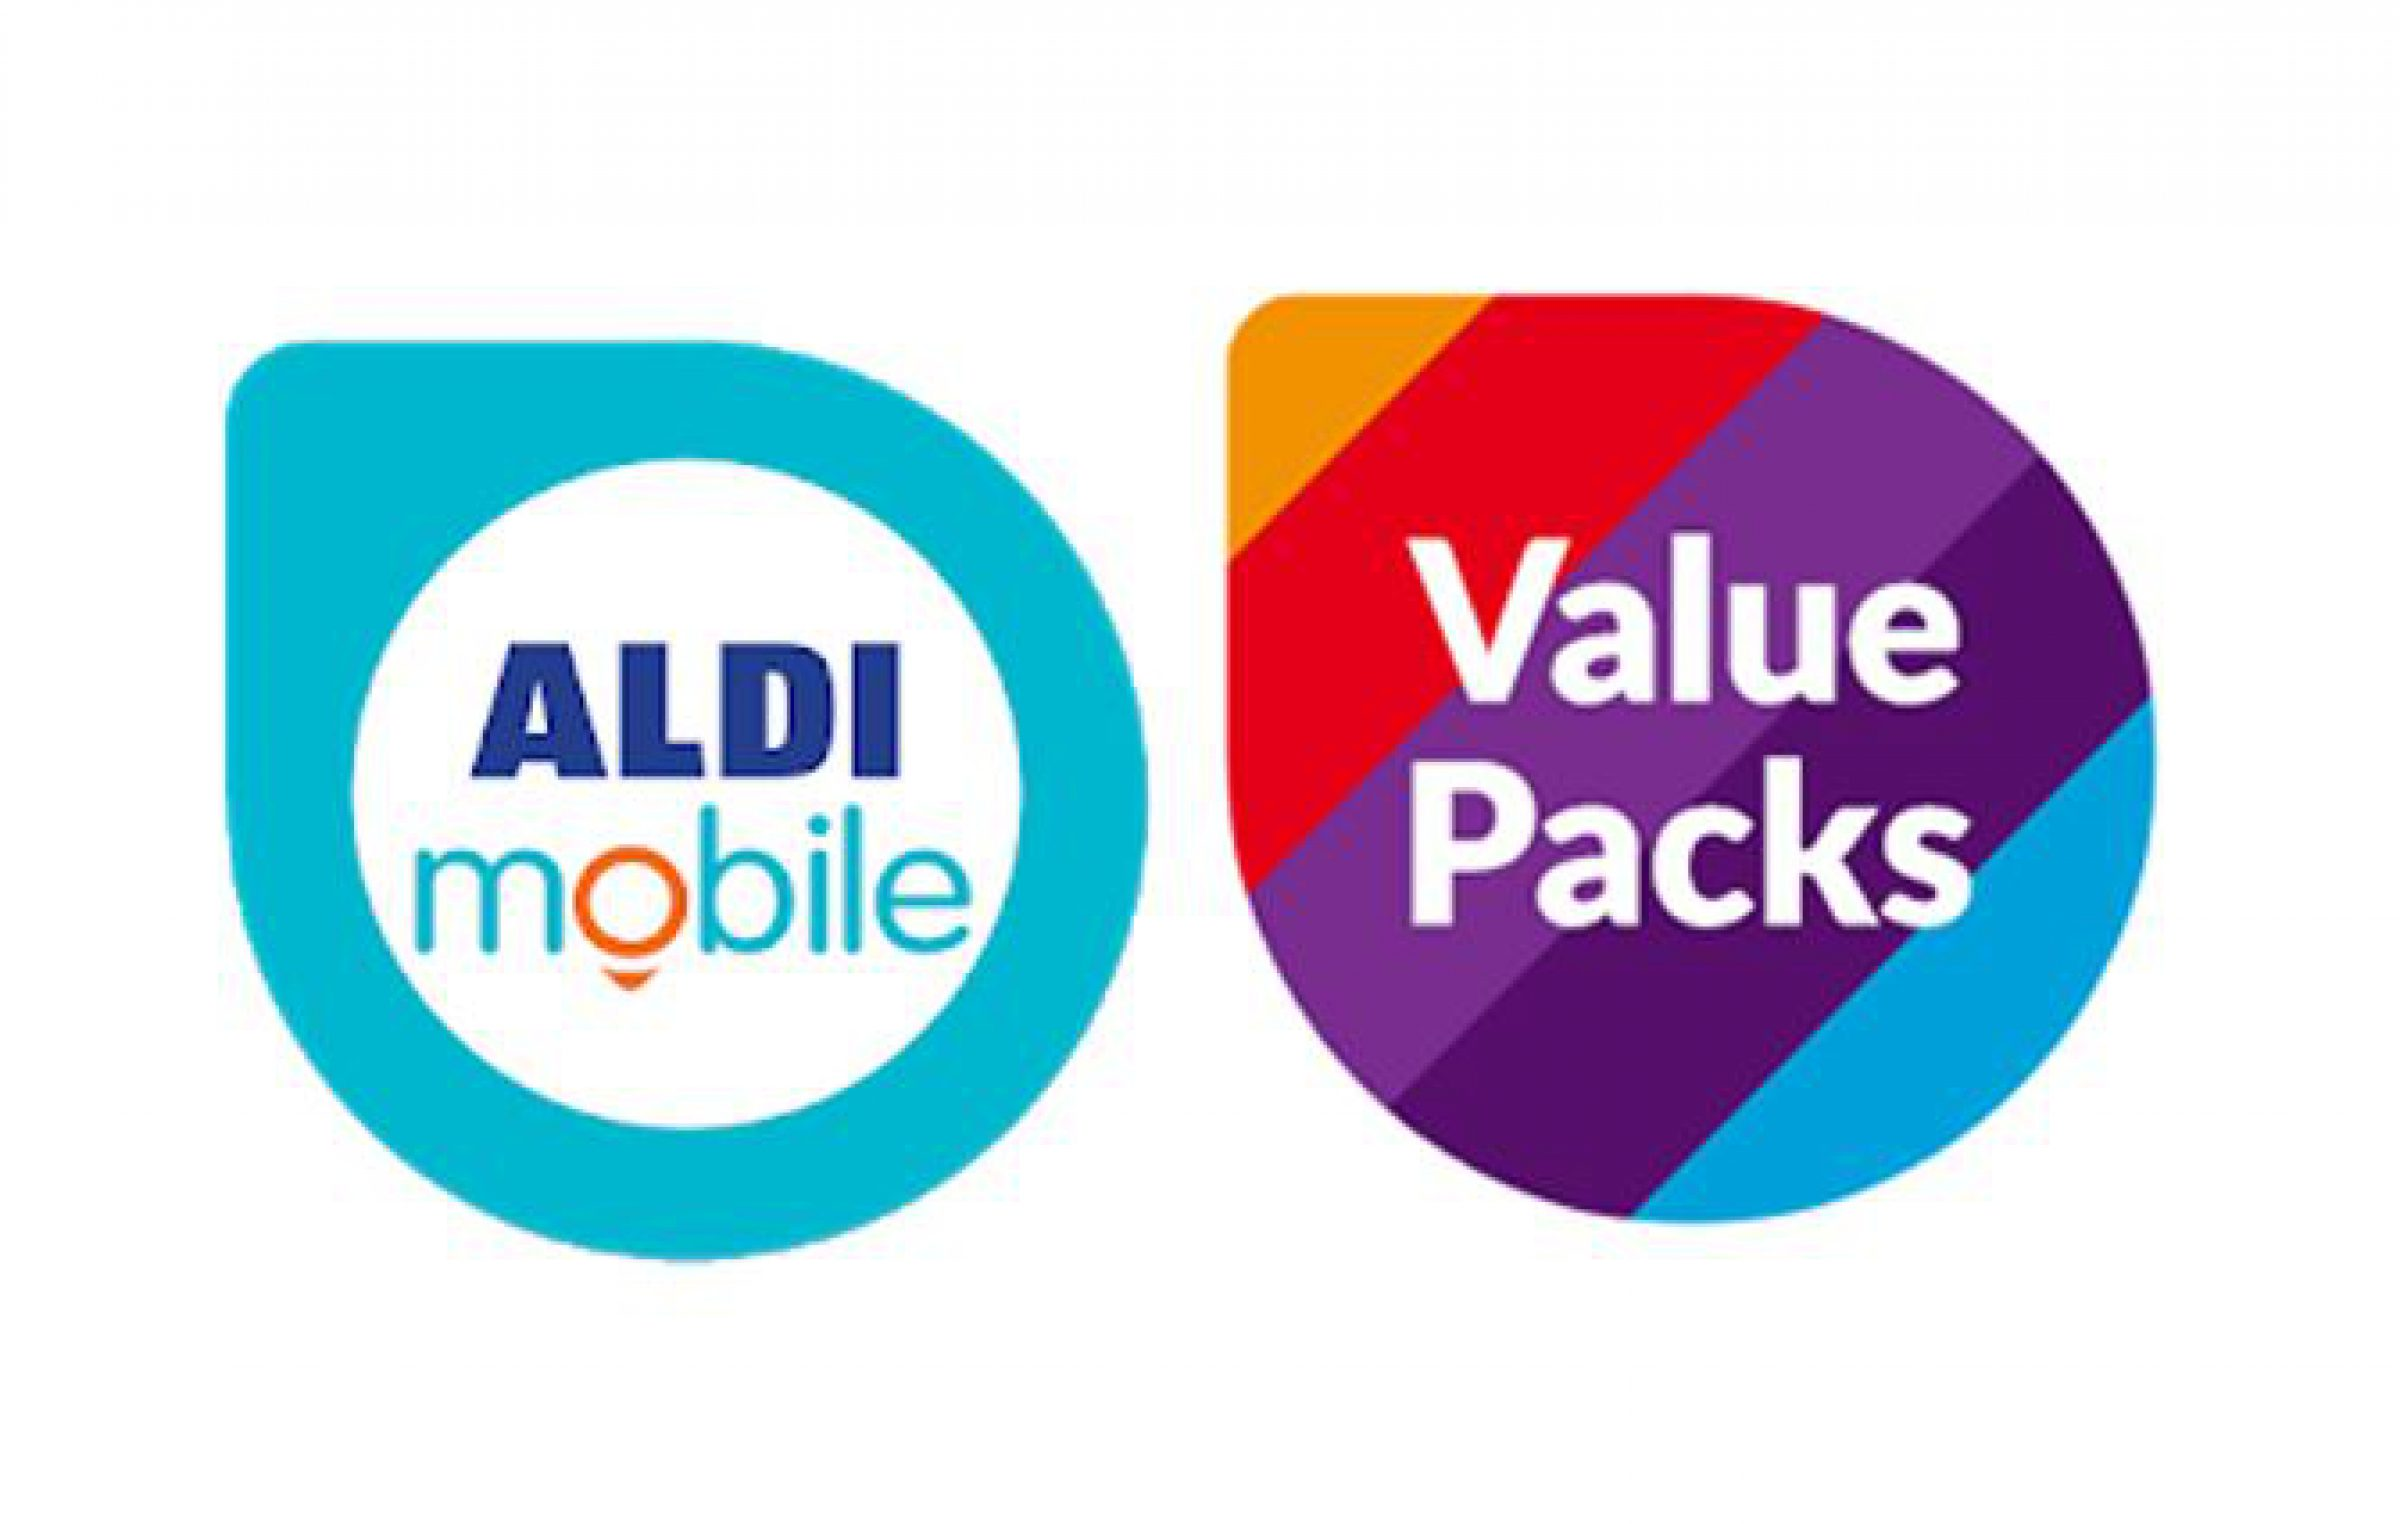 Aldi Mobile Value Packs